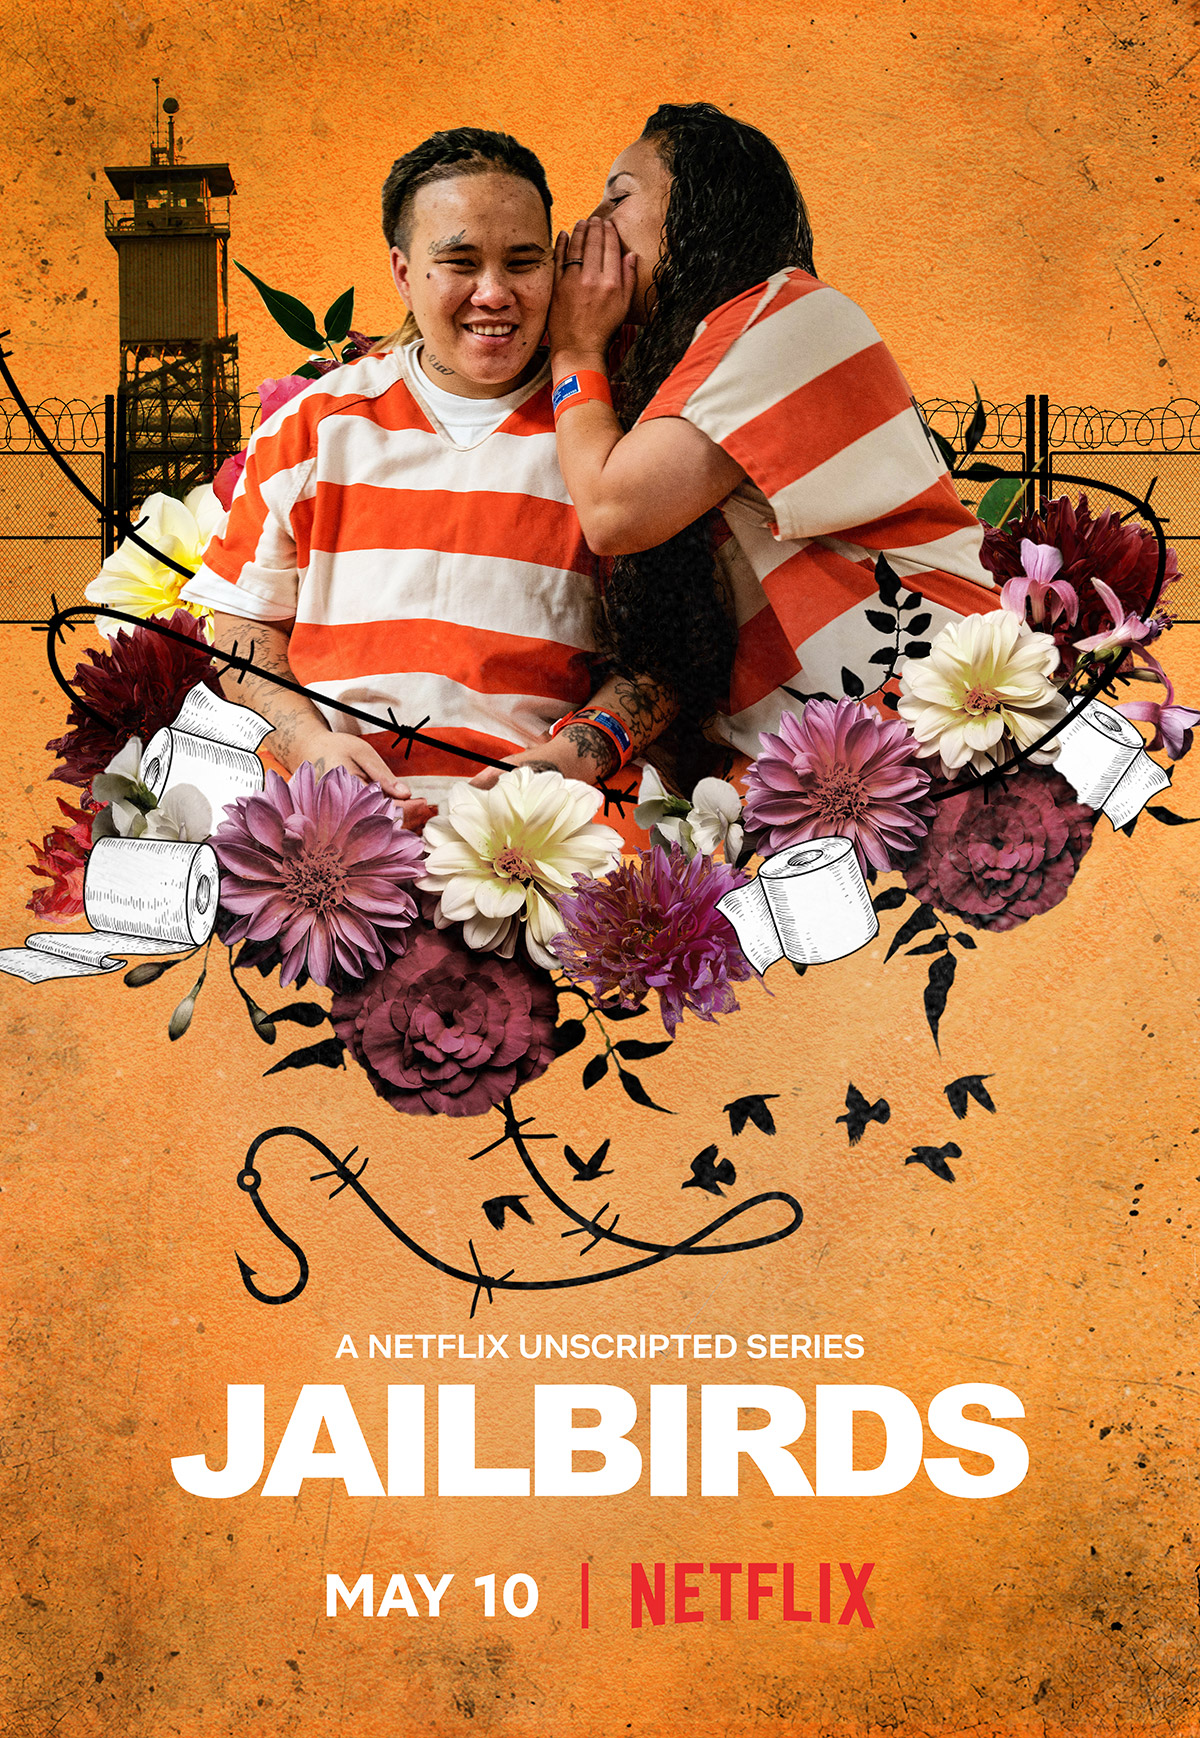 Netflix's Jailbirds